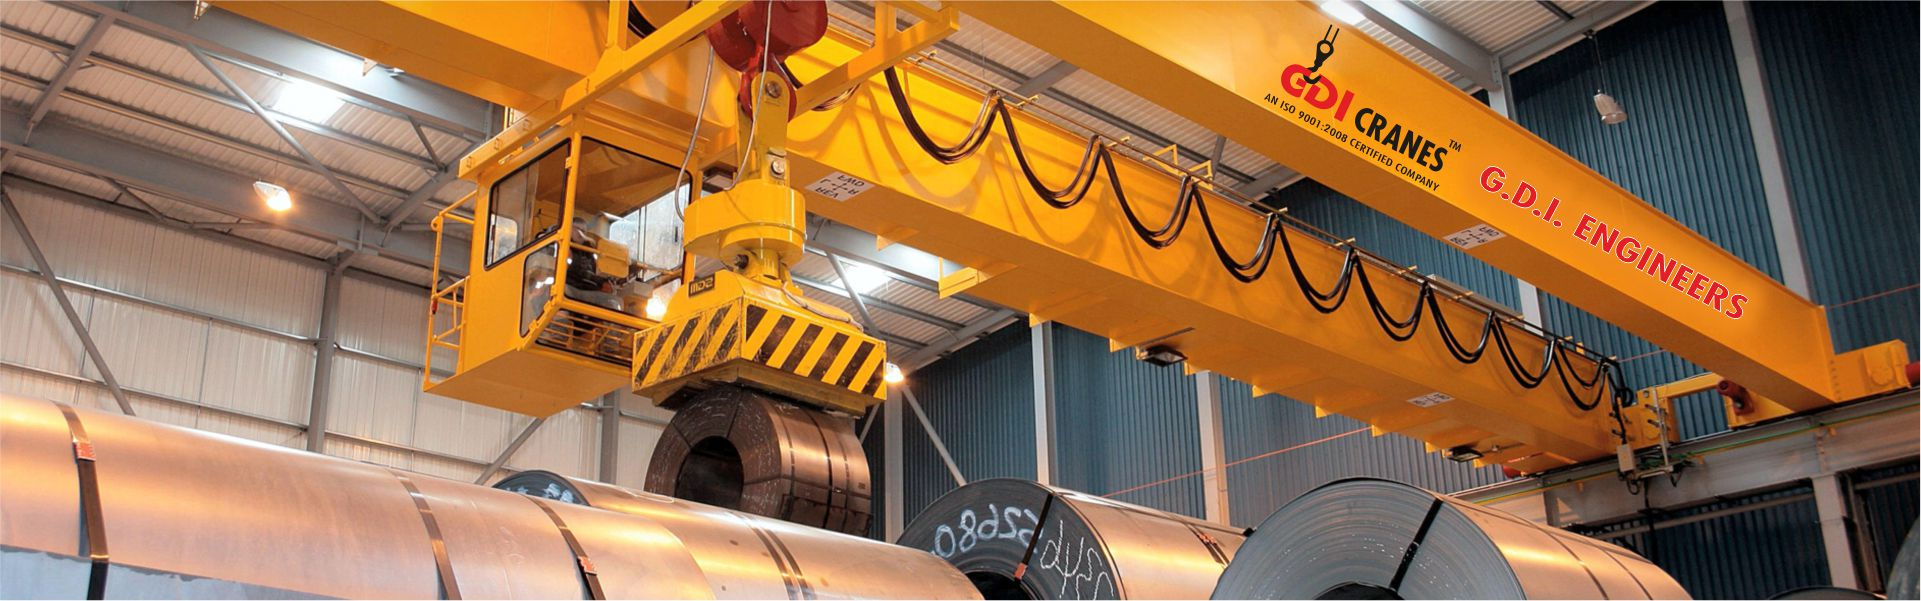 EOT Crane Manufacturers in Ludhiana Punjab India